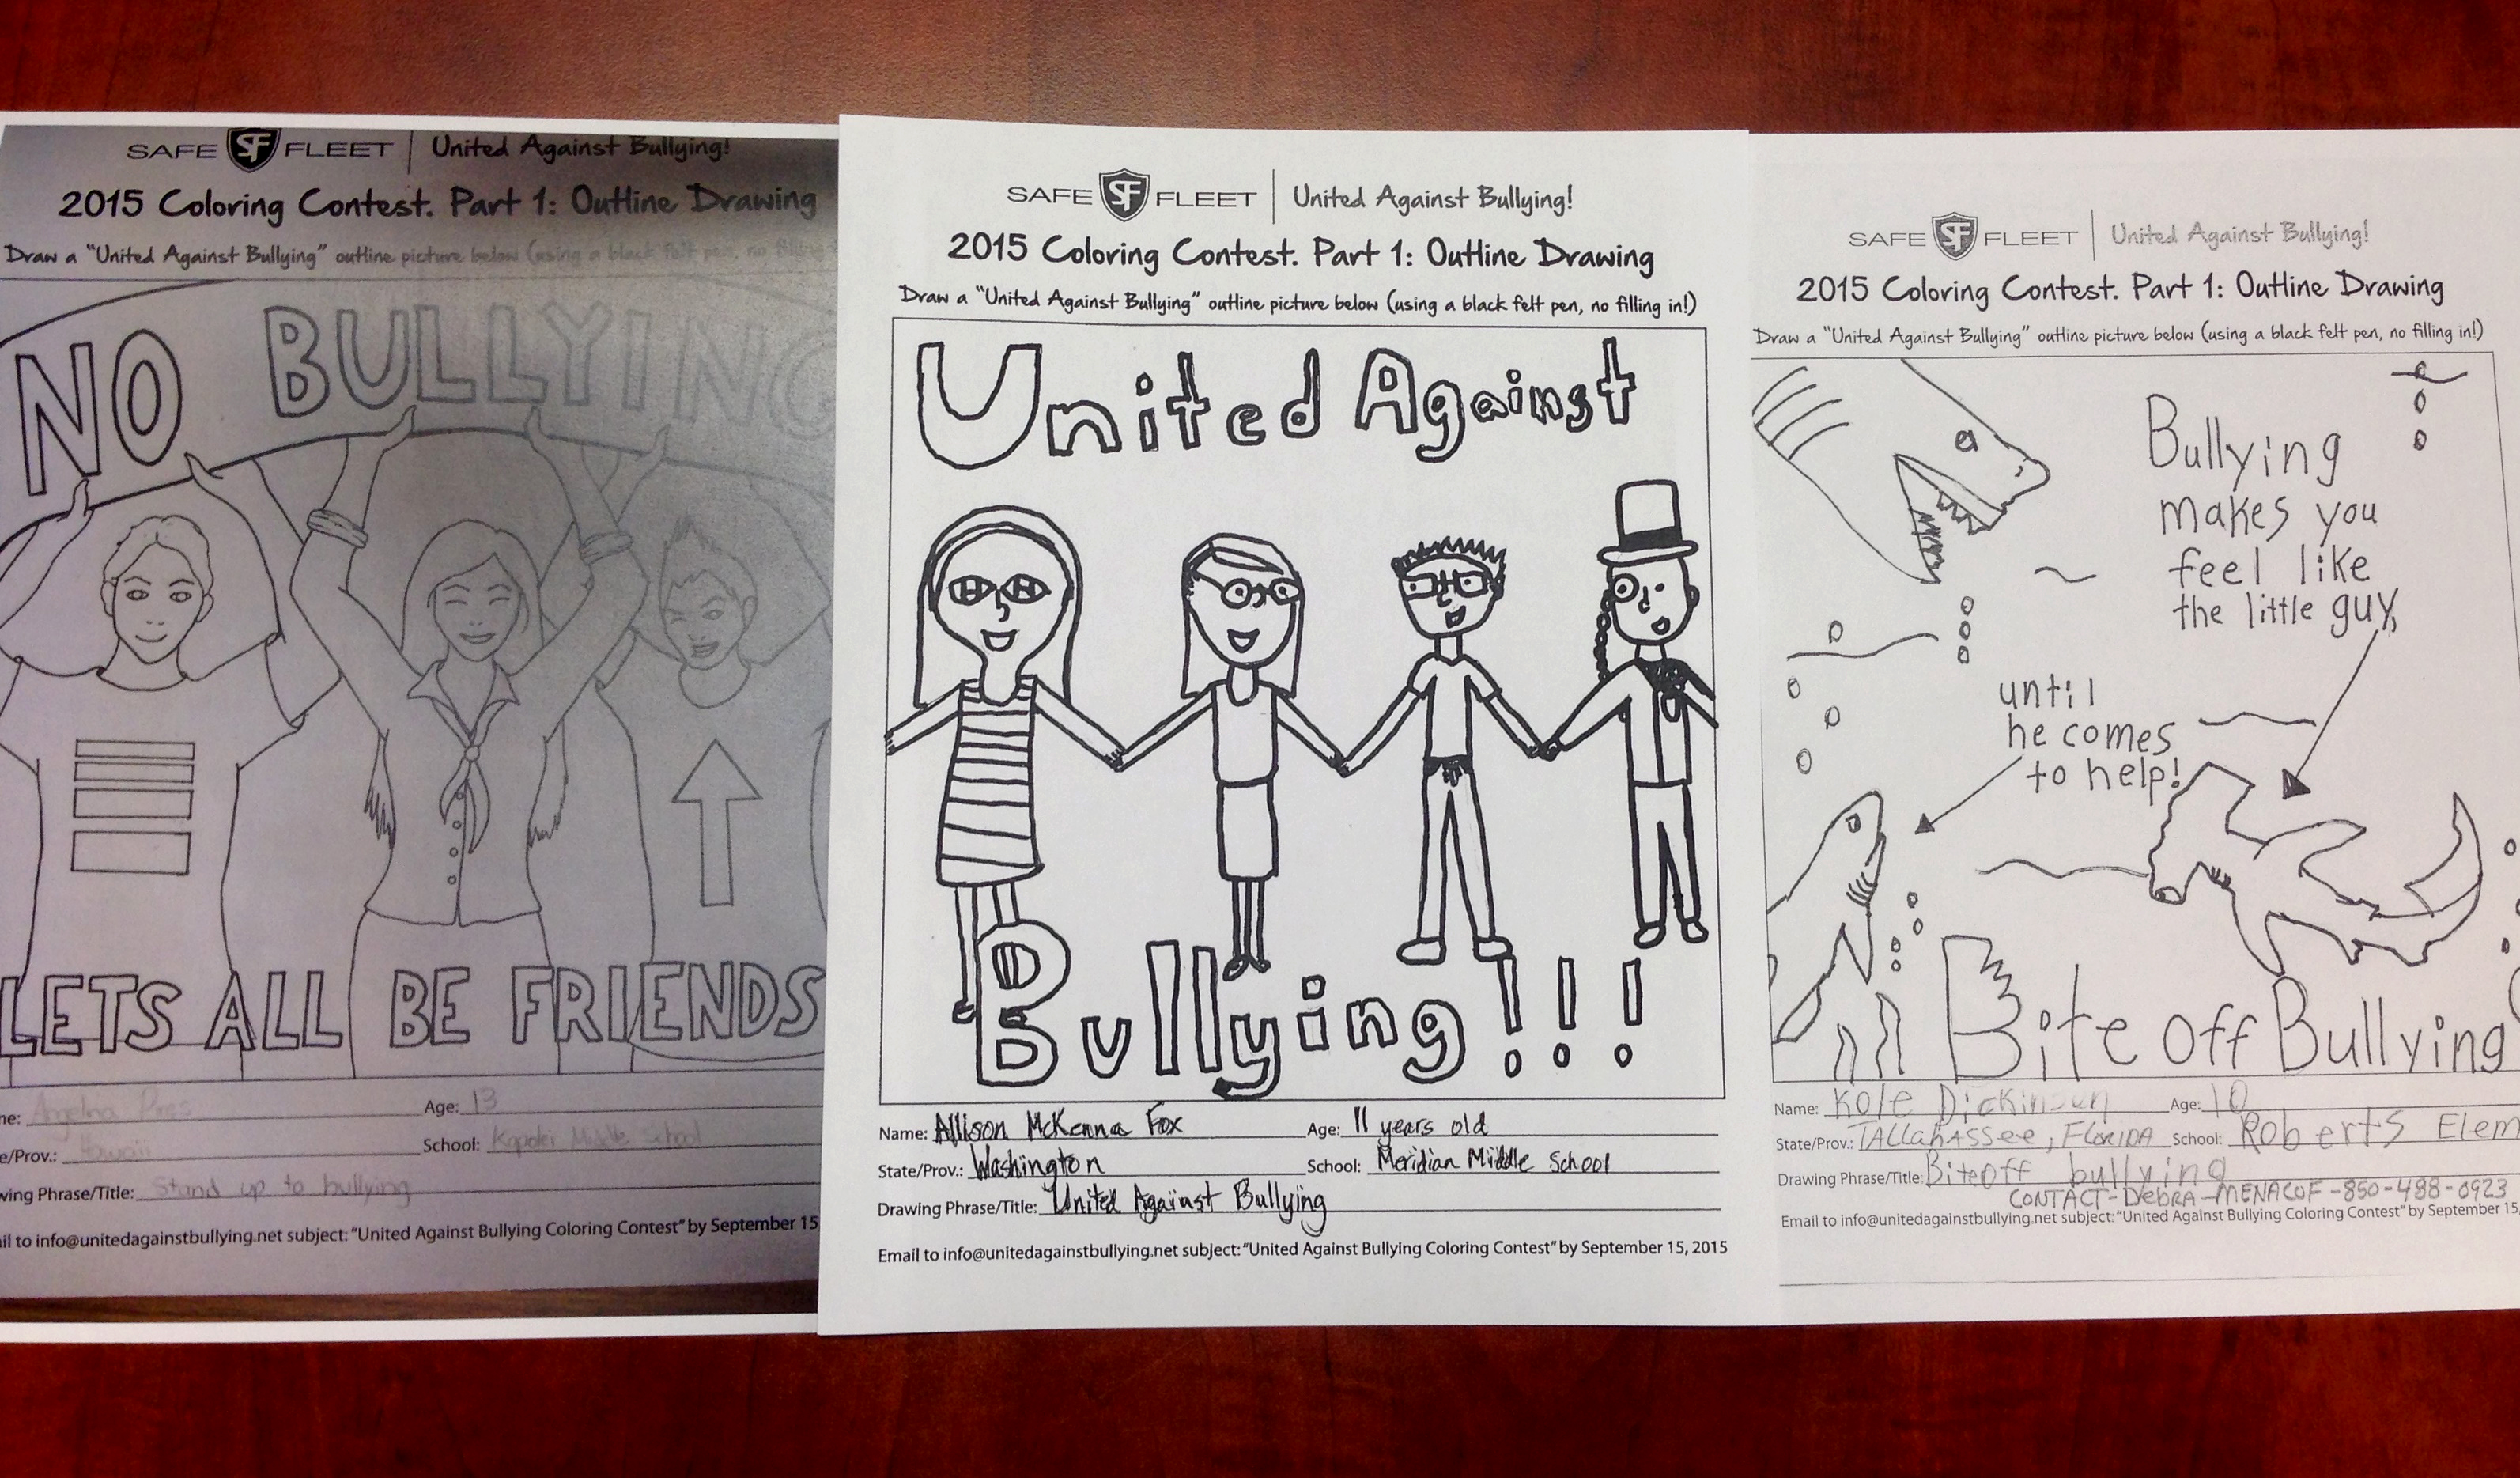 creativity helps stop bullying results of united against bullying